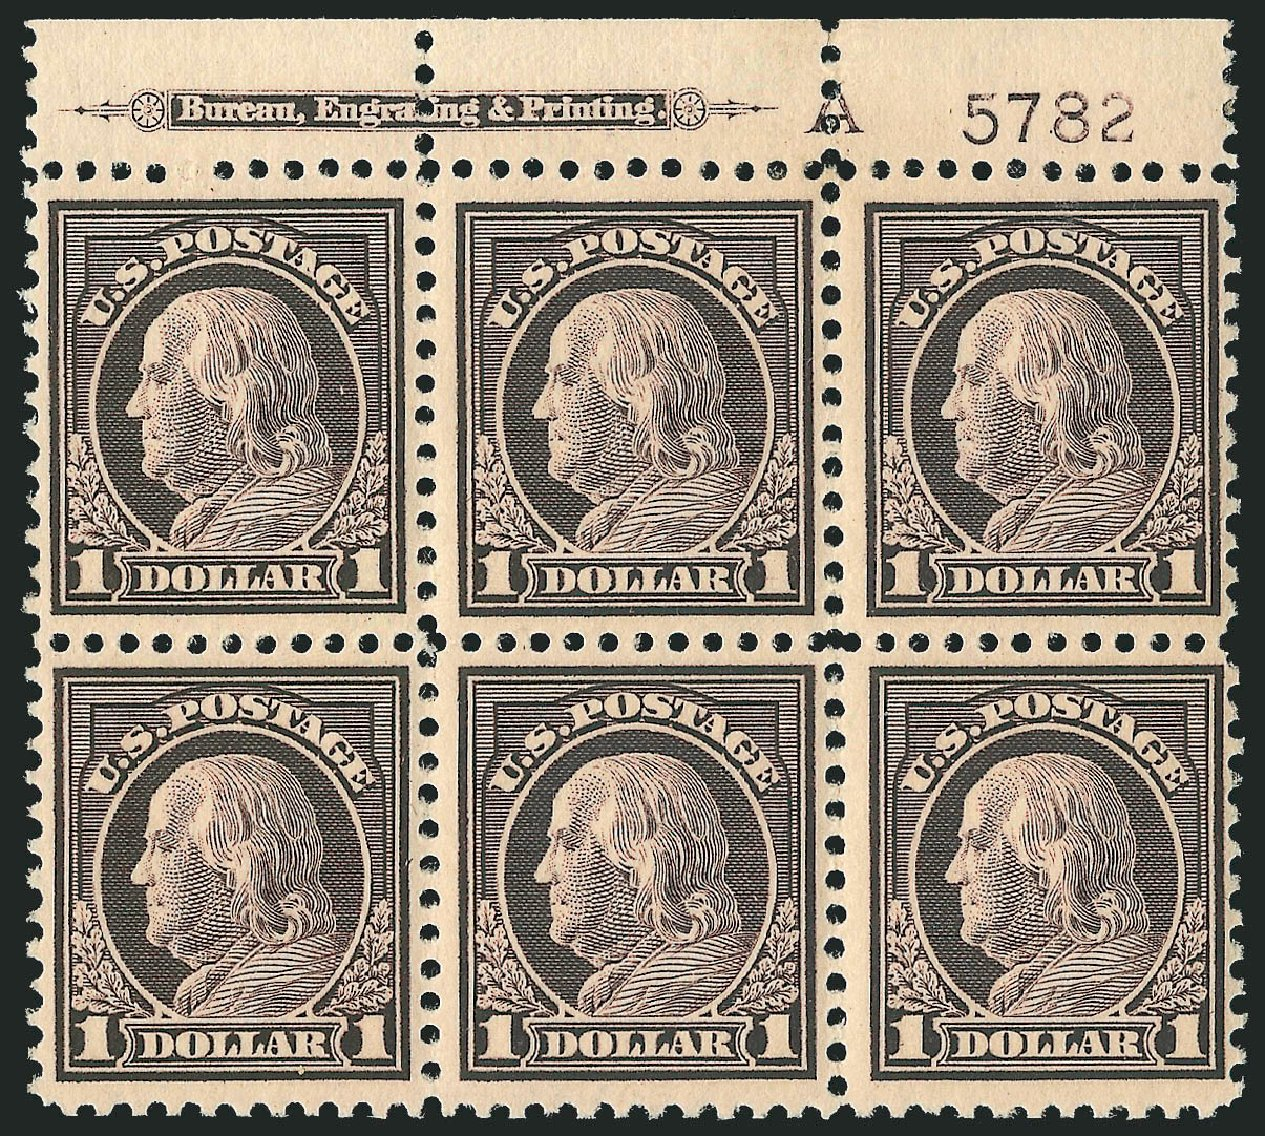 Costs of US Stamps Scott Catalogue # 518 - 1917 US$1.00 Franklin Perf 11. Robert Siegel Auction Galleries, Sep 2014, Sale 1078, Lot 571